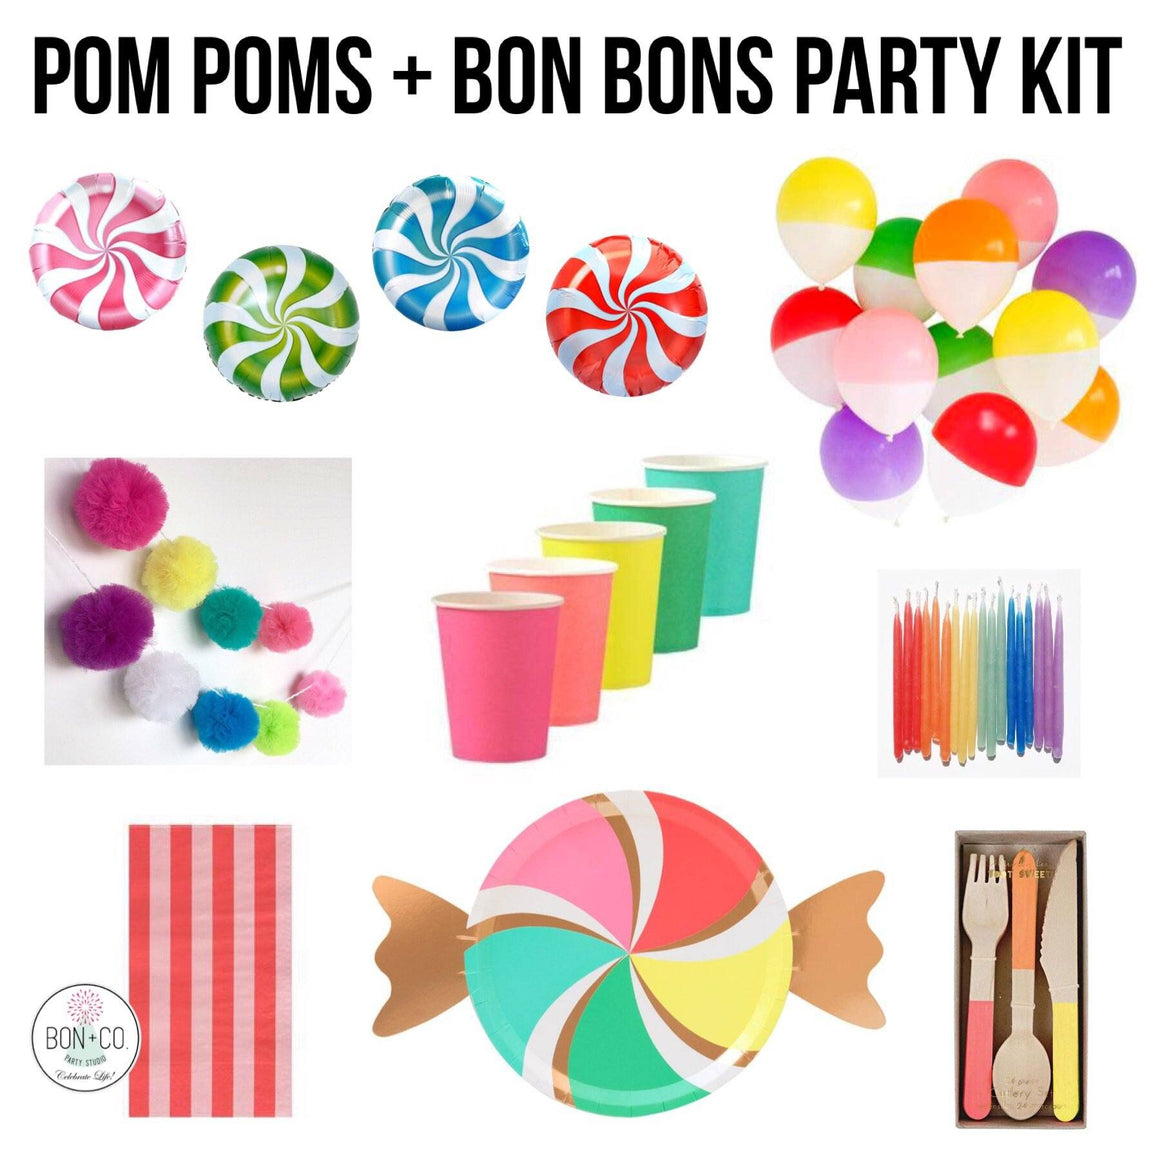 PARTY KIT - POM POMS + BON BONS, Party Kit, Bon + Co. Party Studio - Bon + Co. Party Studio